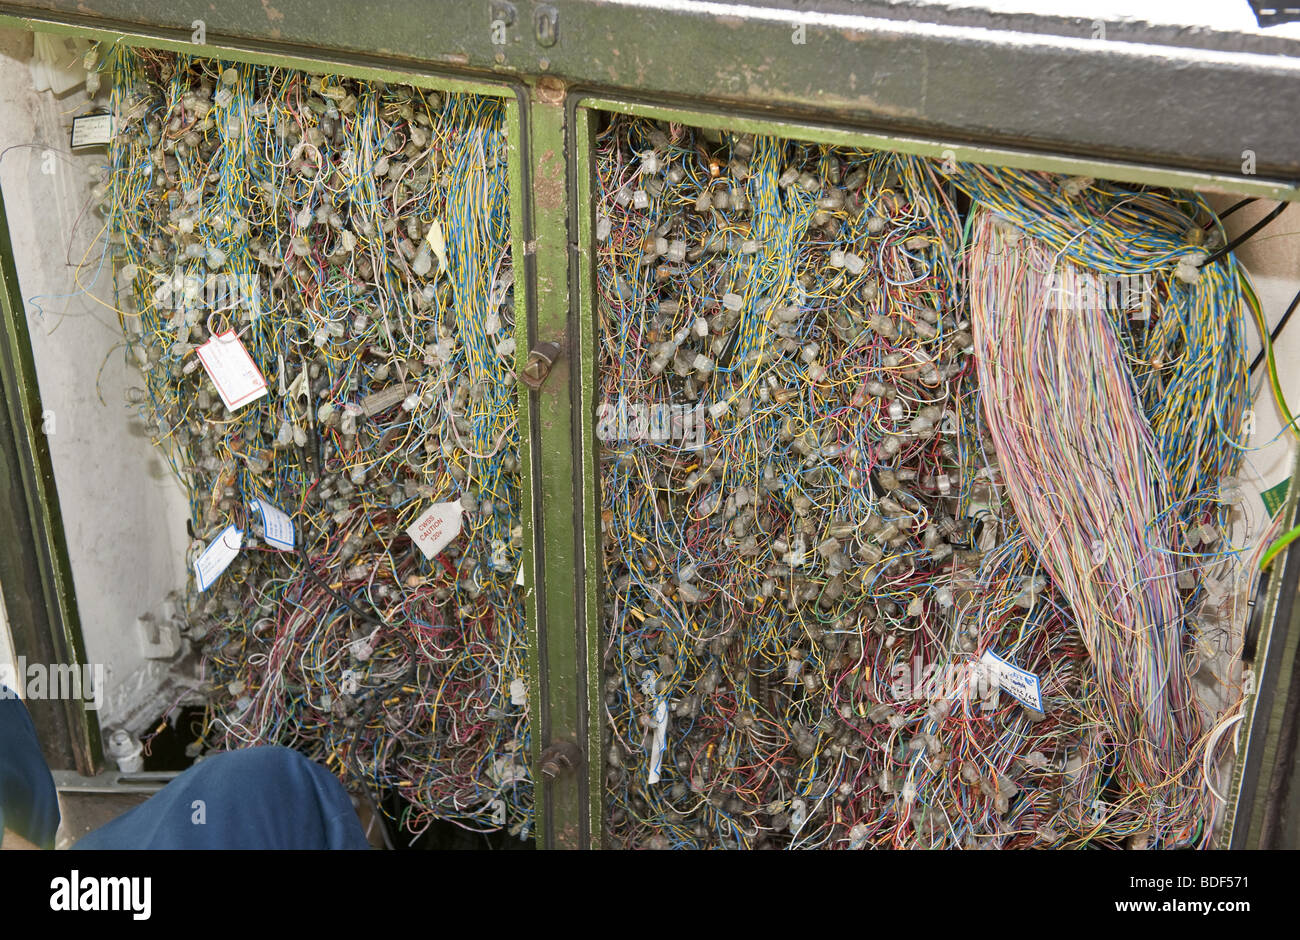 Wiring Old Telephone Junction Box